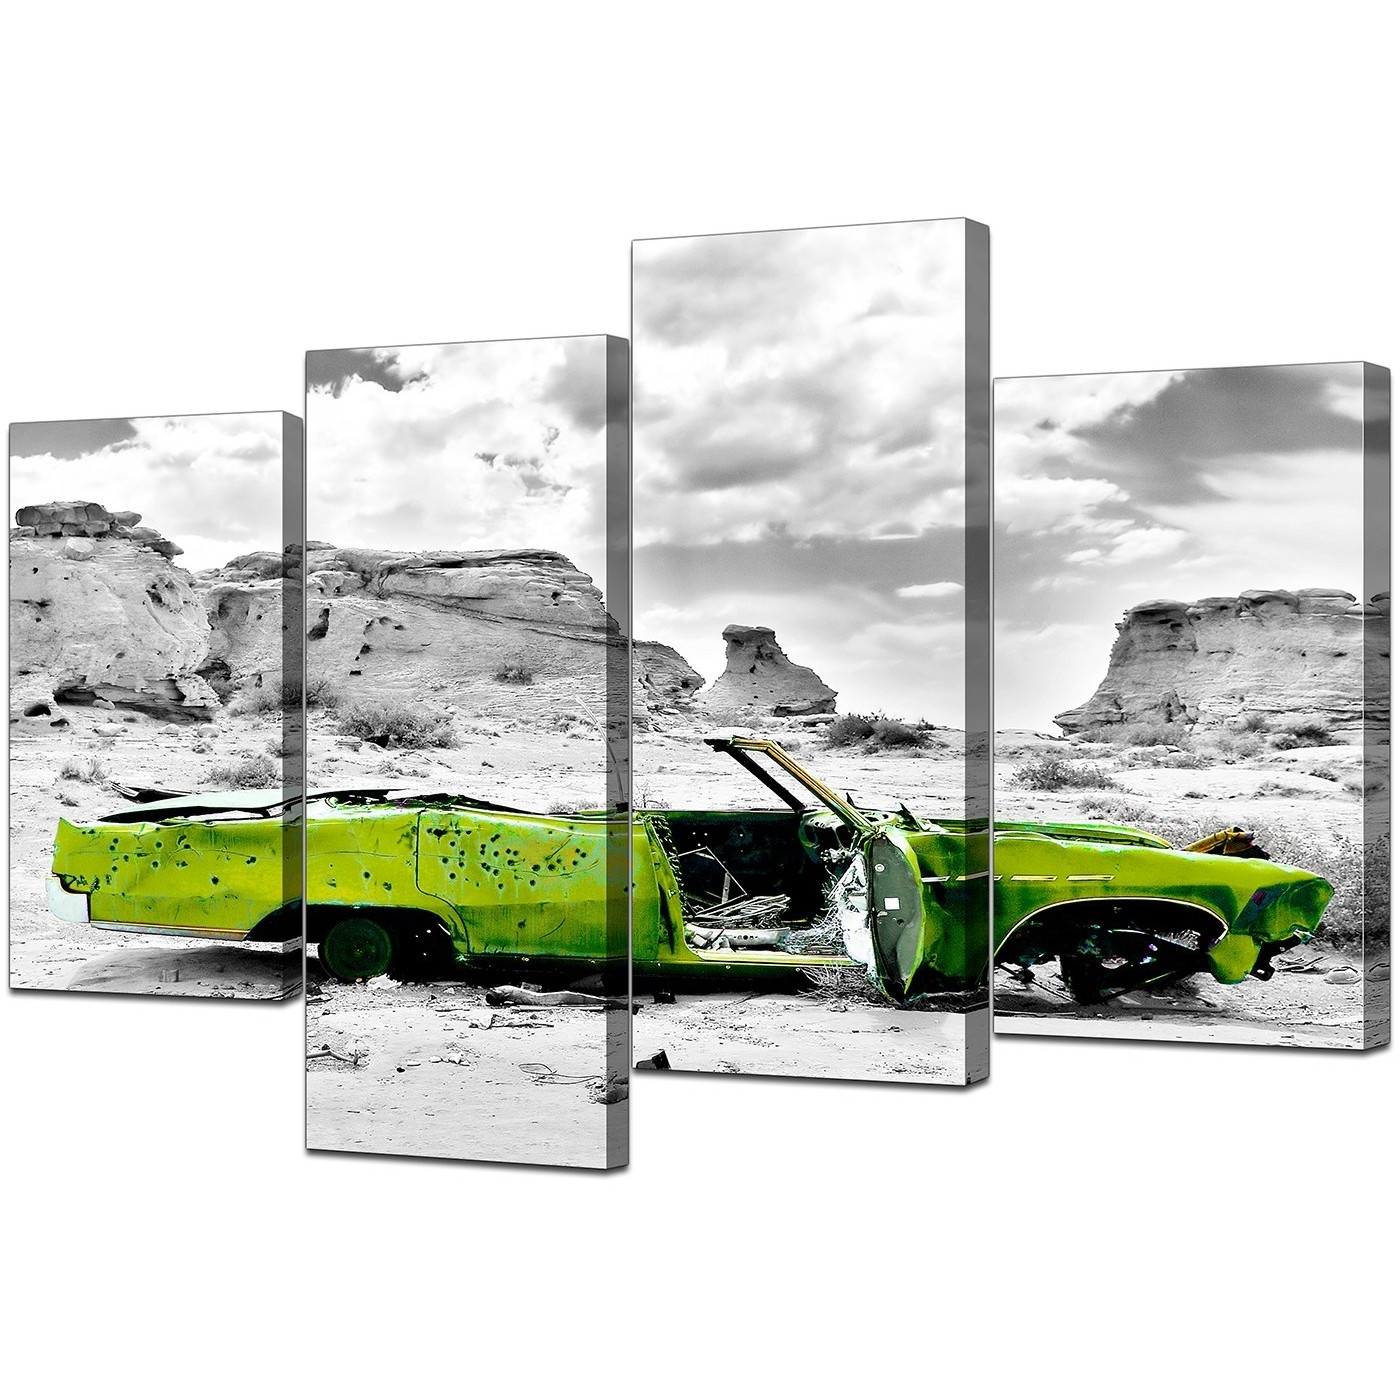 Lime Green Abstract Wall Art Regarding Preferred Canvas Art Of Green Car In Black & White For Your Office (Gallery 12 of 15)